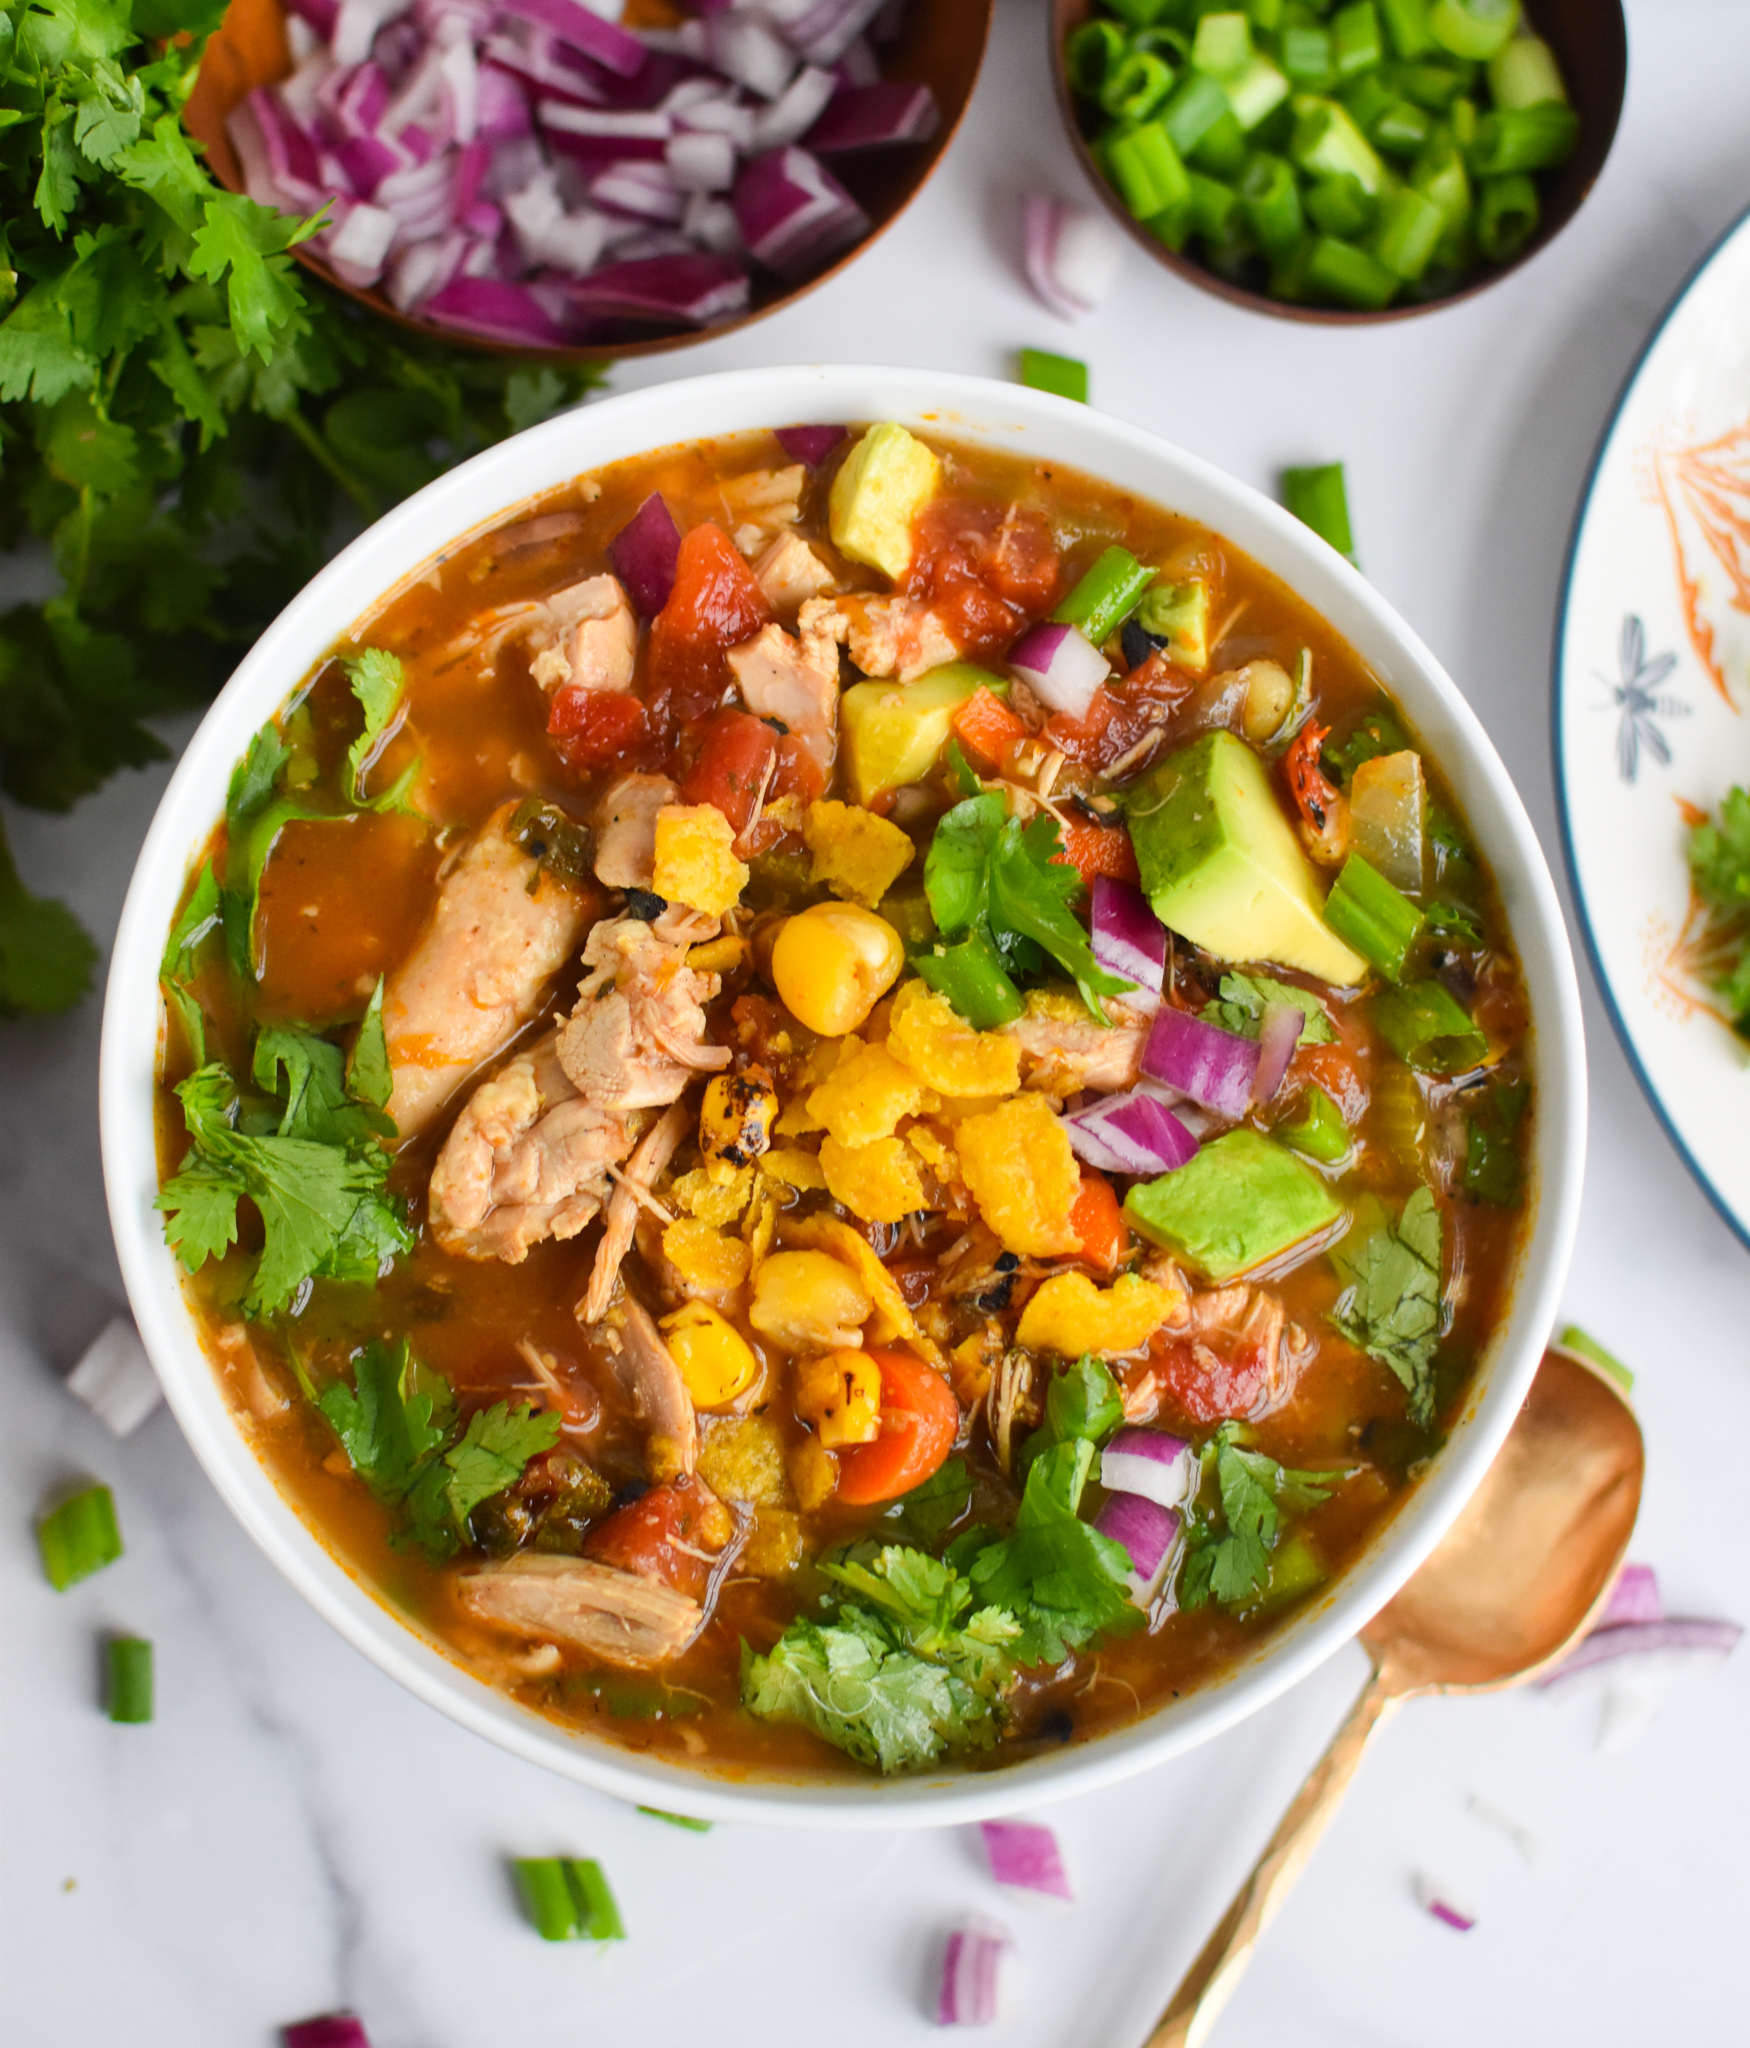 Green Chili Chicken Soup in white bowl